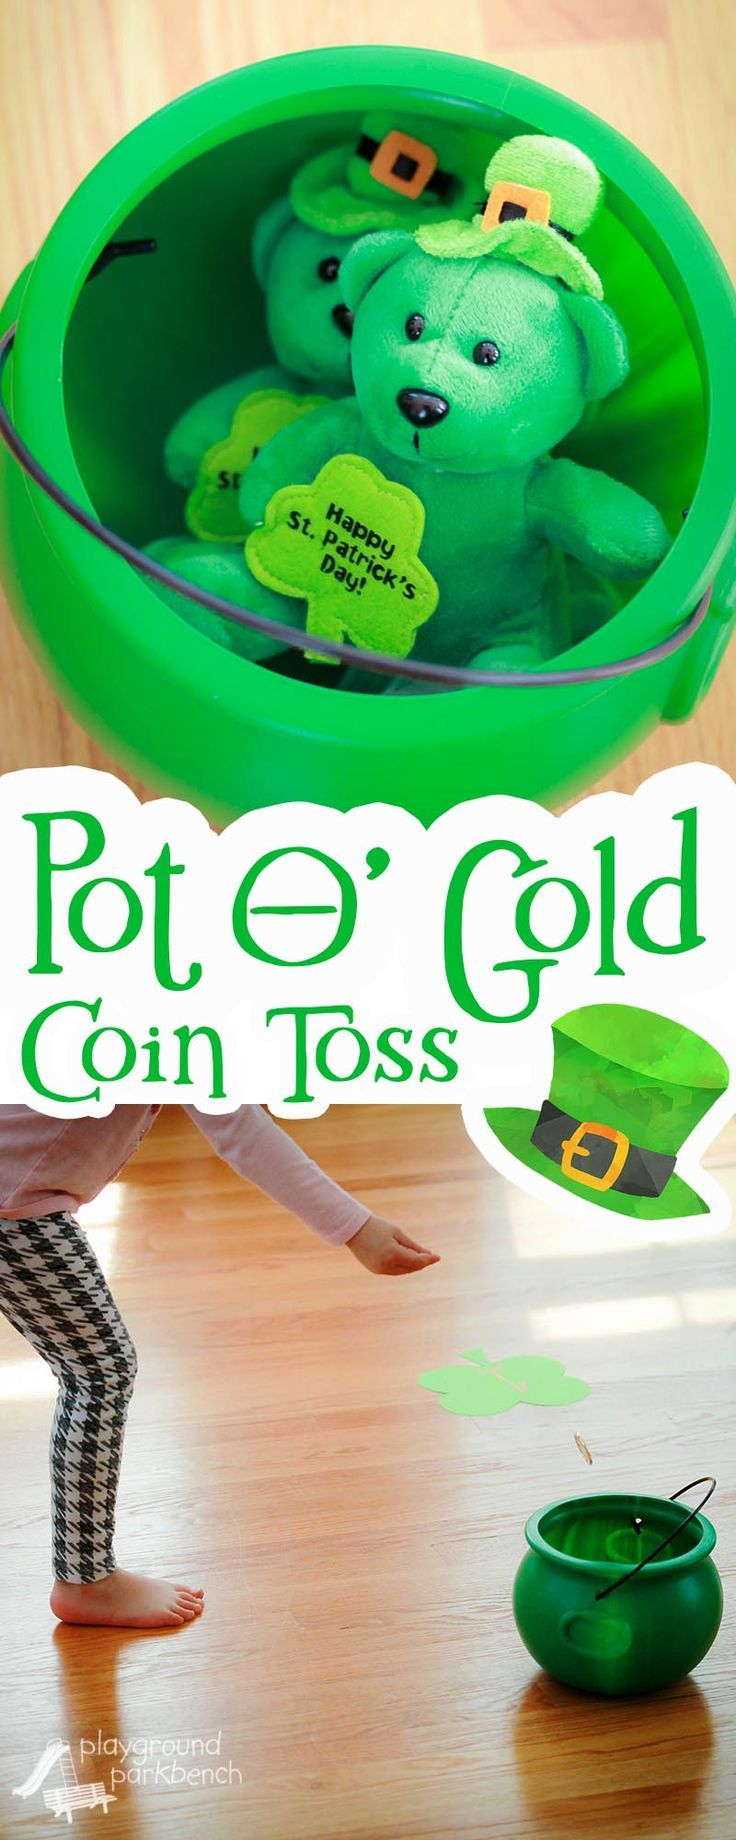 Need a quick and easy St. Patrick's Day game sure to please kids and grown ups too? This Pot O' Gold Coin toss is a crowd pleaser with enough challenge for adult party-goers, while also engaging gross motor skills for kids! | Party Games | Games for Kids | St. Paddy's Day | Kids Activities | Preschool |